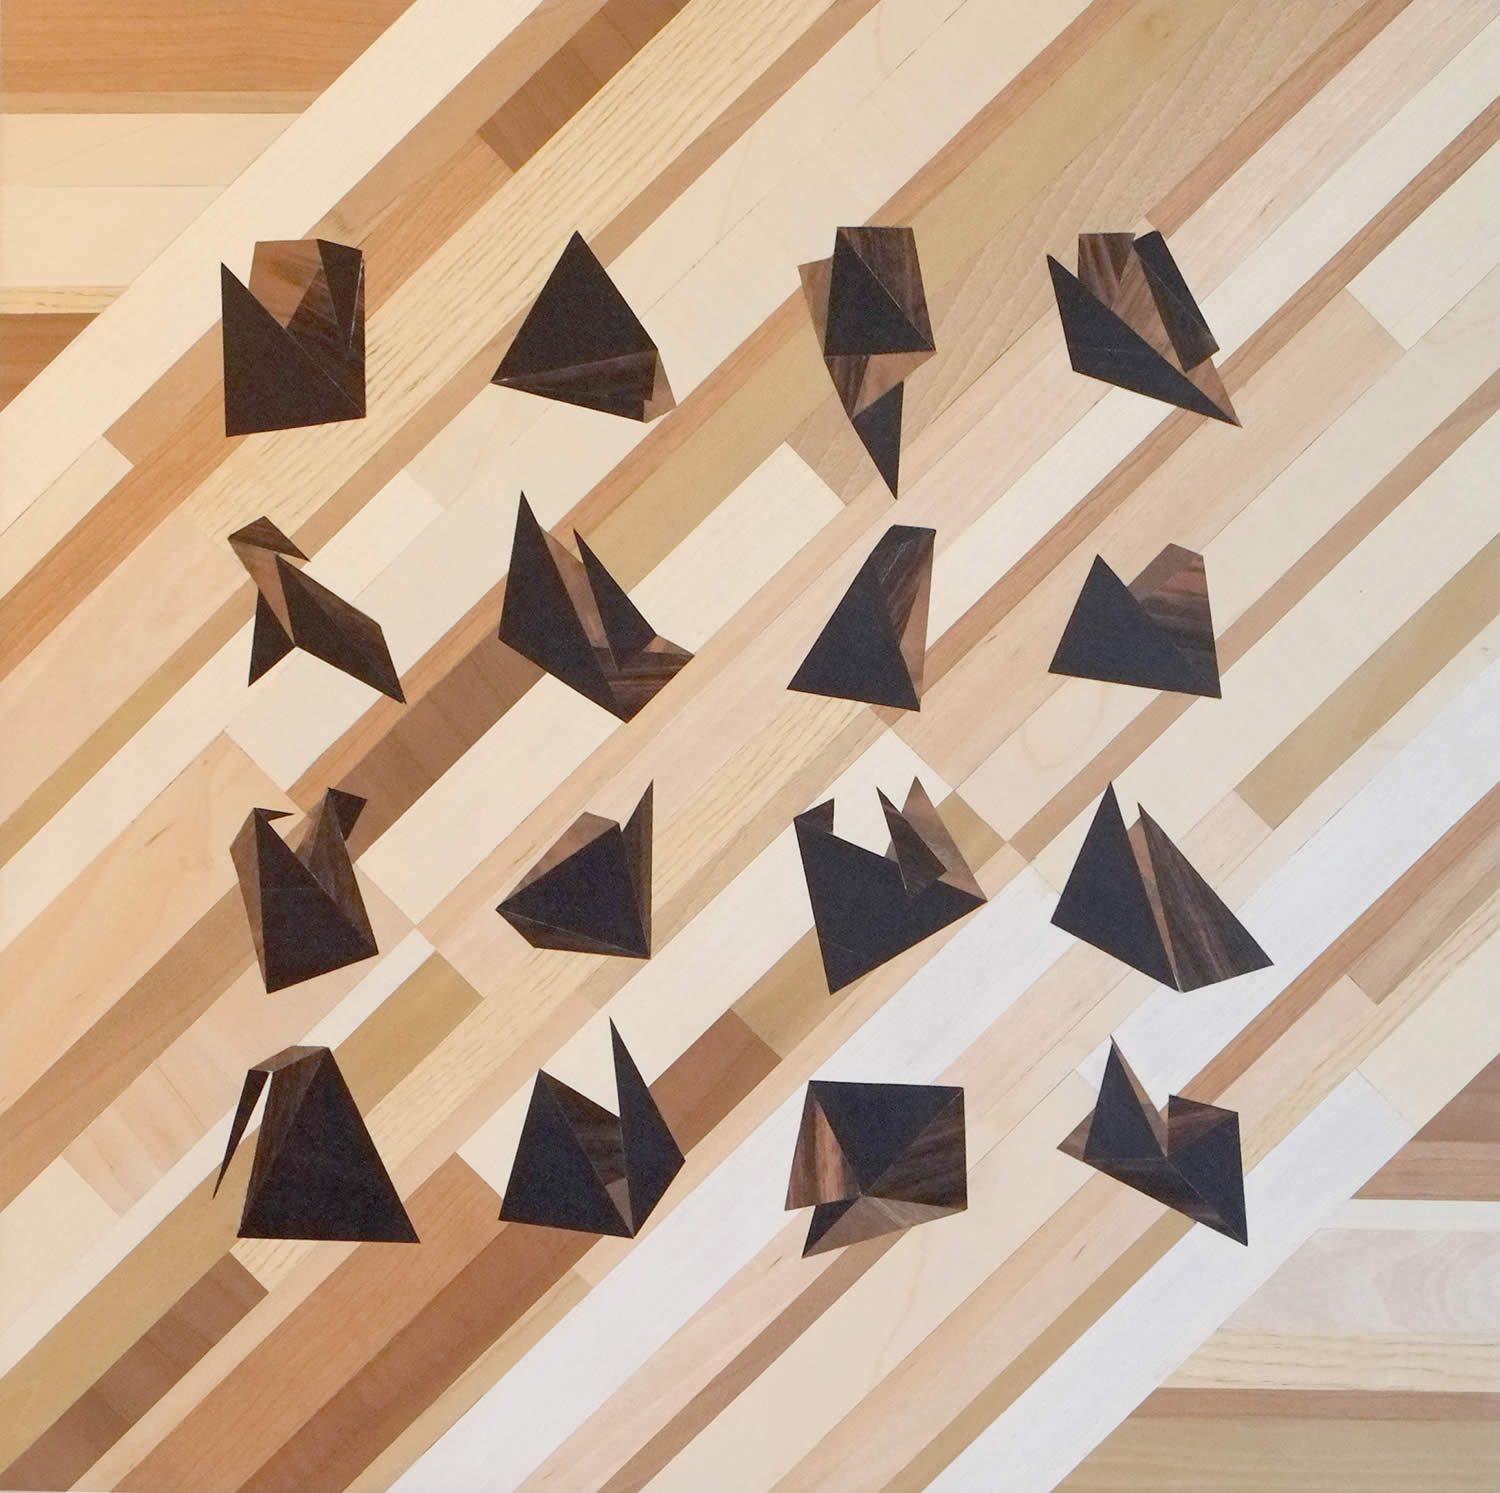 geometric shapes in rows, wood art. quid by rocco pezzella